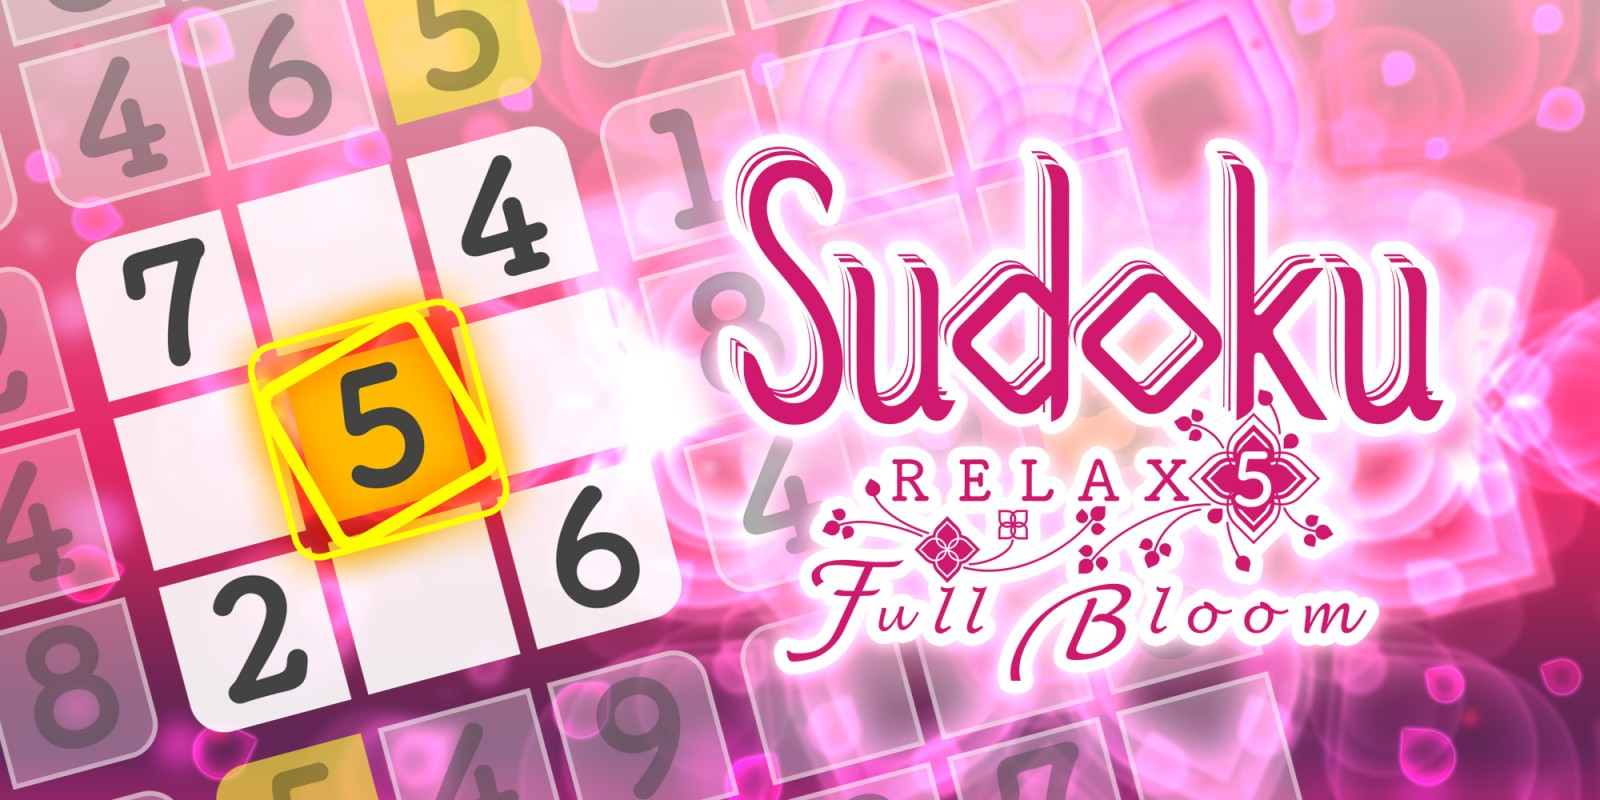 Sudoku Relax 5 Full Bloom